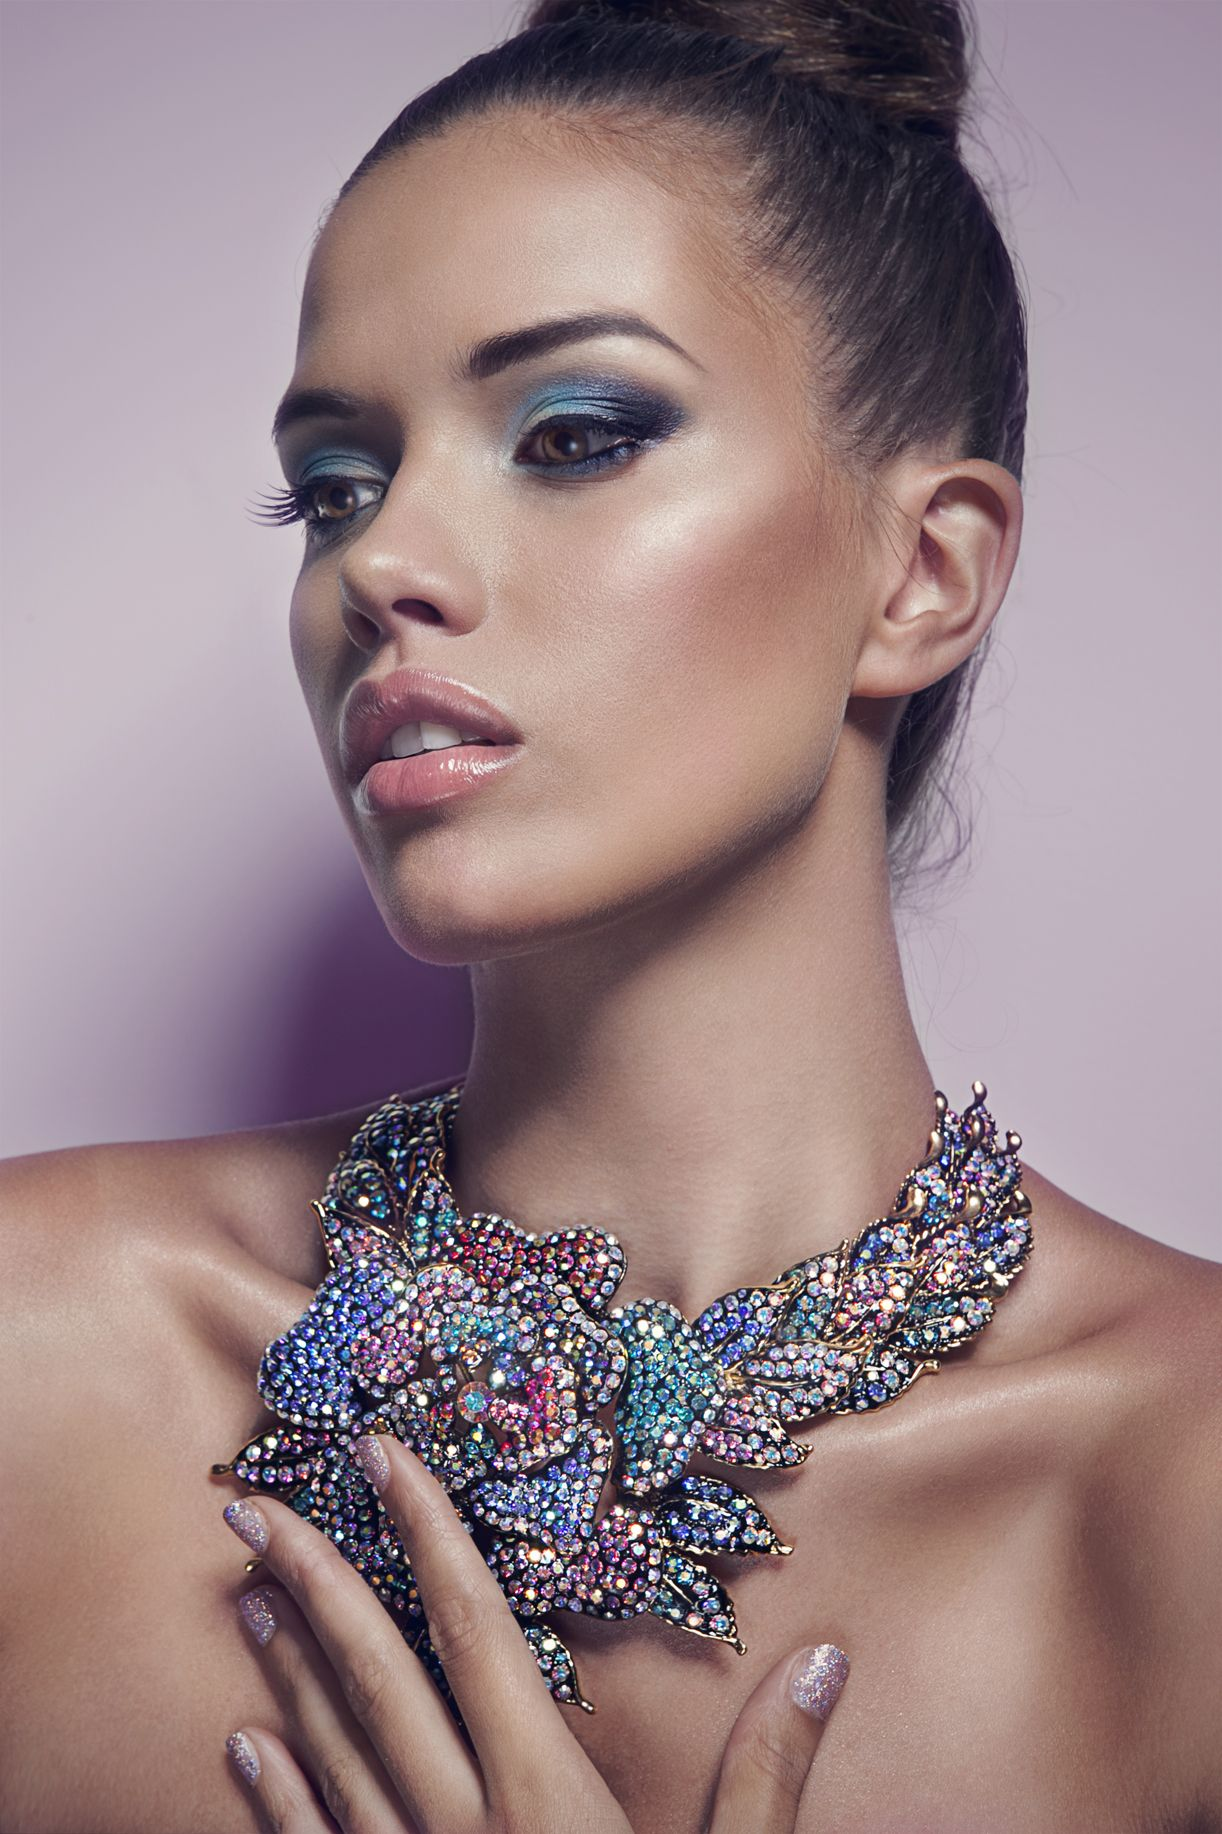 Shoot for Urban Decay